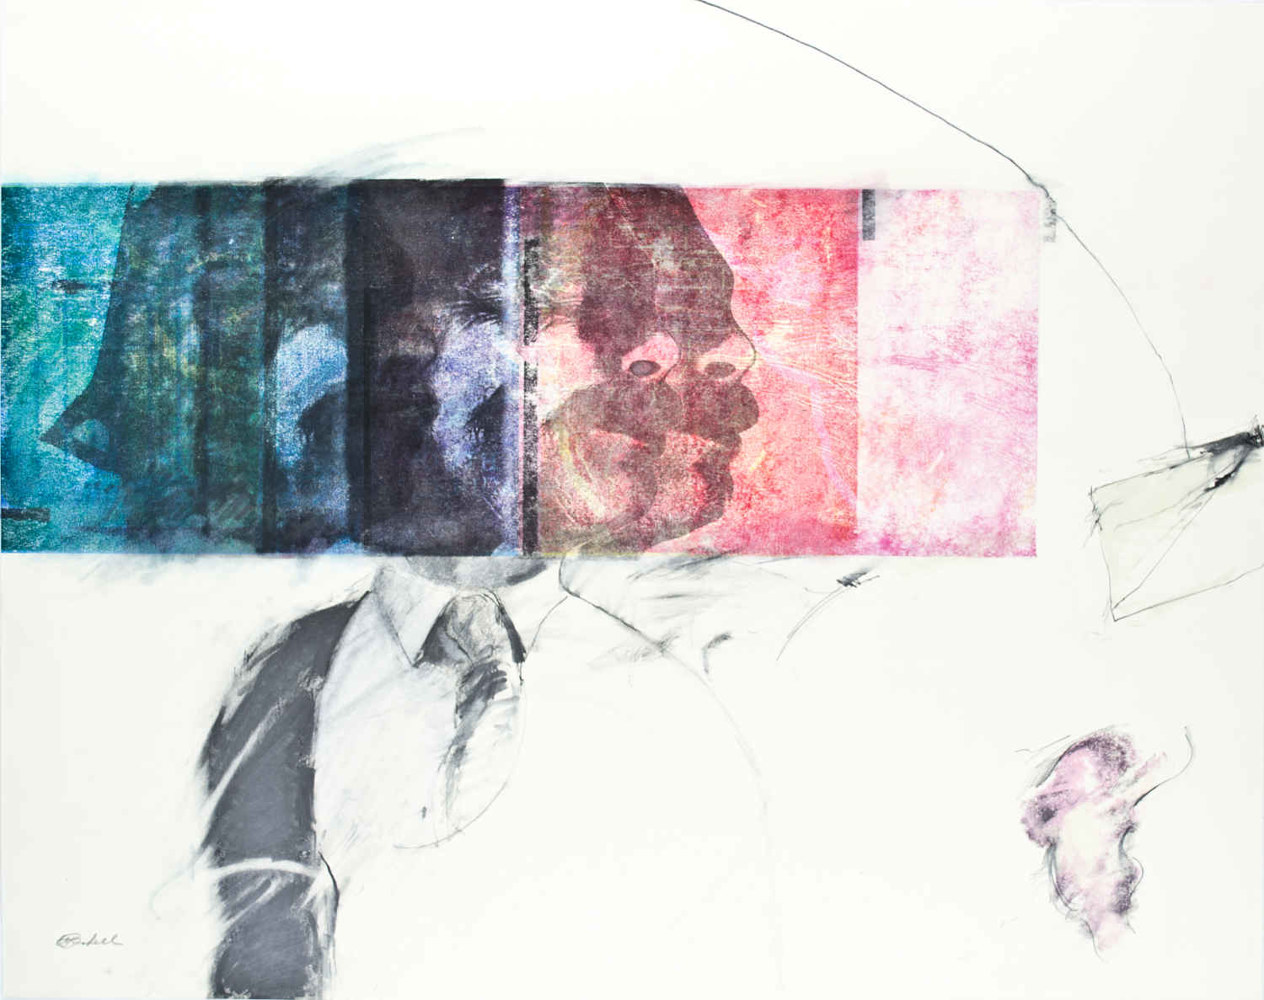 Mixed-media artwork Twist of Fate by Will Bushell